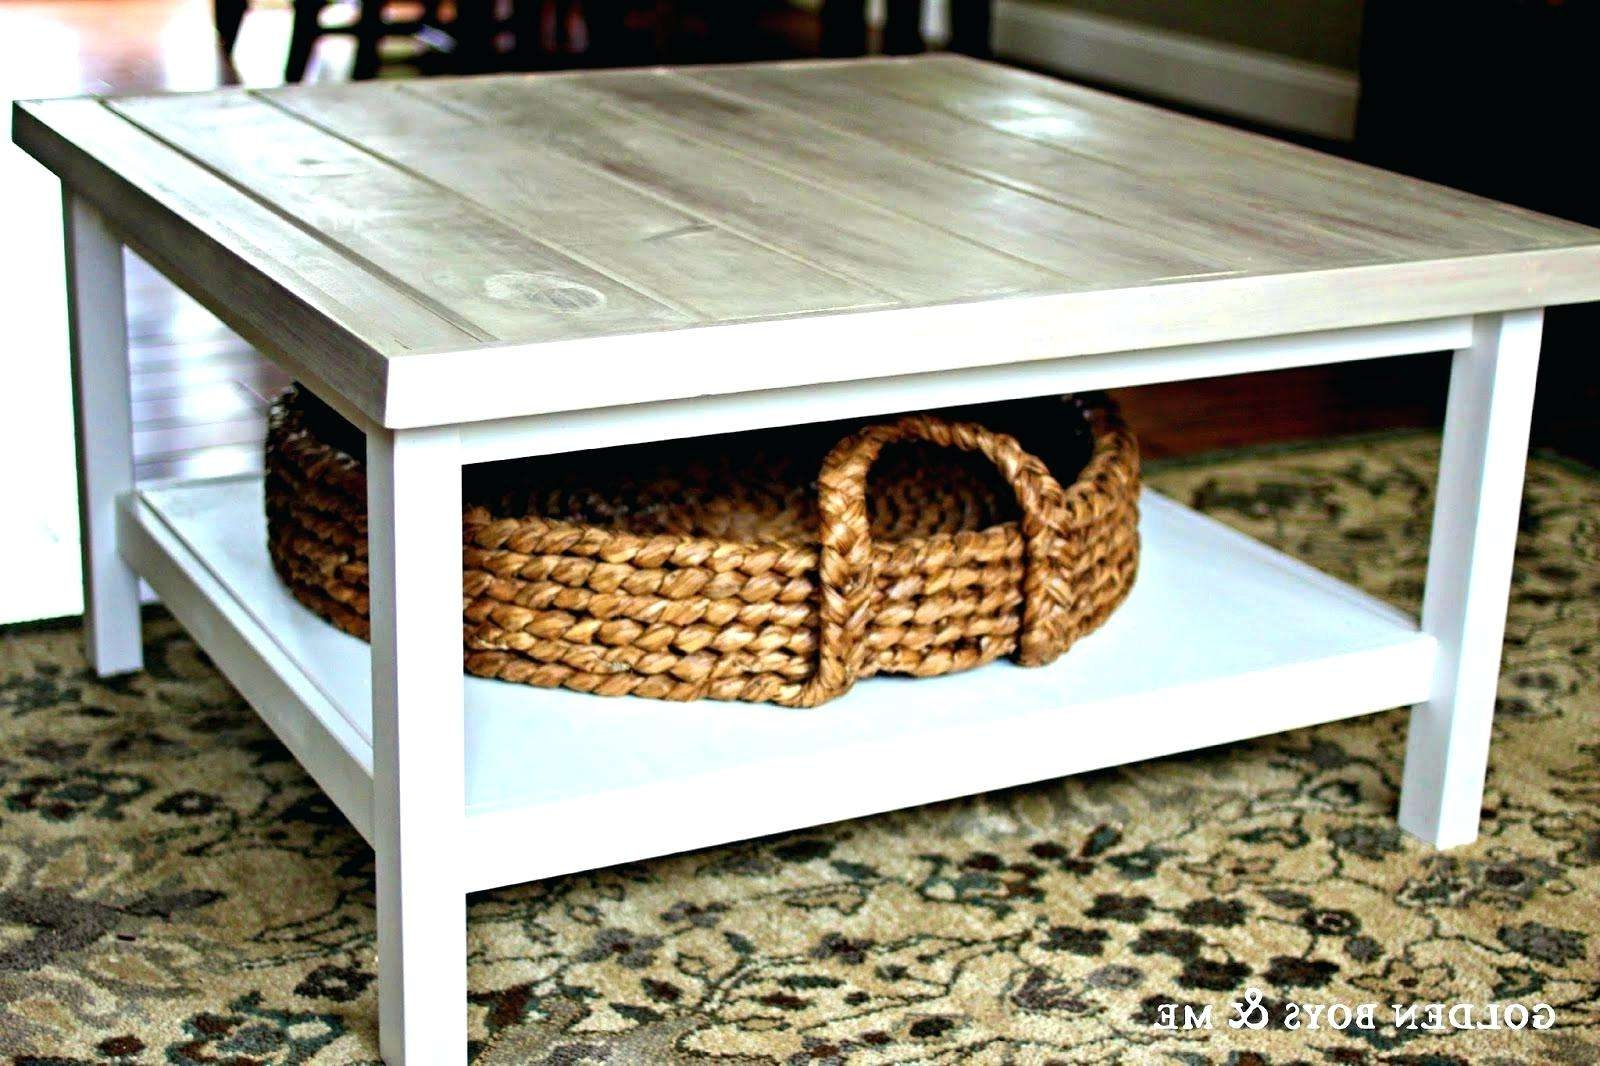 Preferred White Coffee Tables With Baskets Inside Nantucket Basket Coffee Table • Coffee Table Design (View 15 of 20)